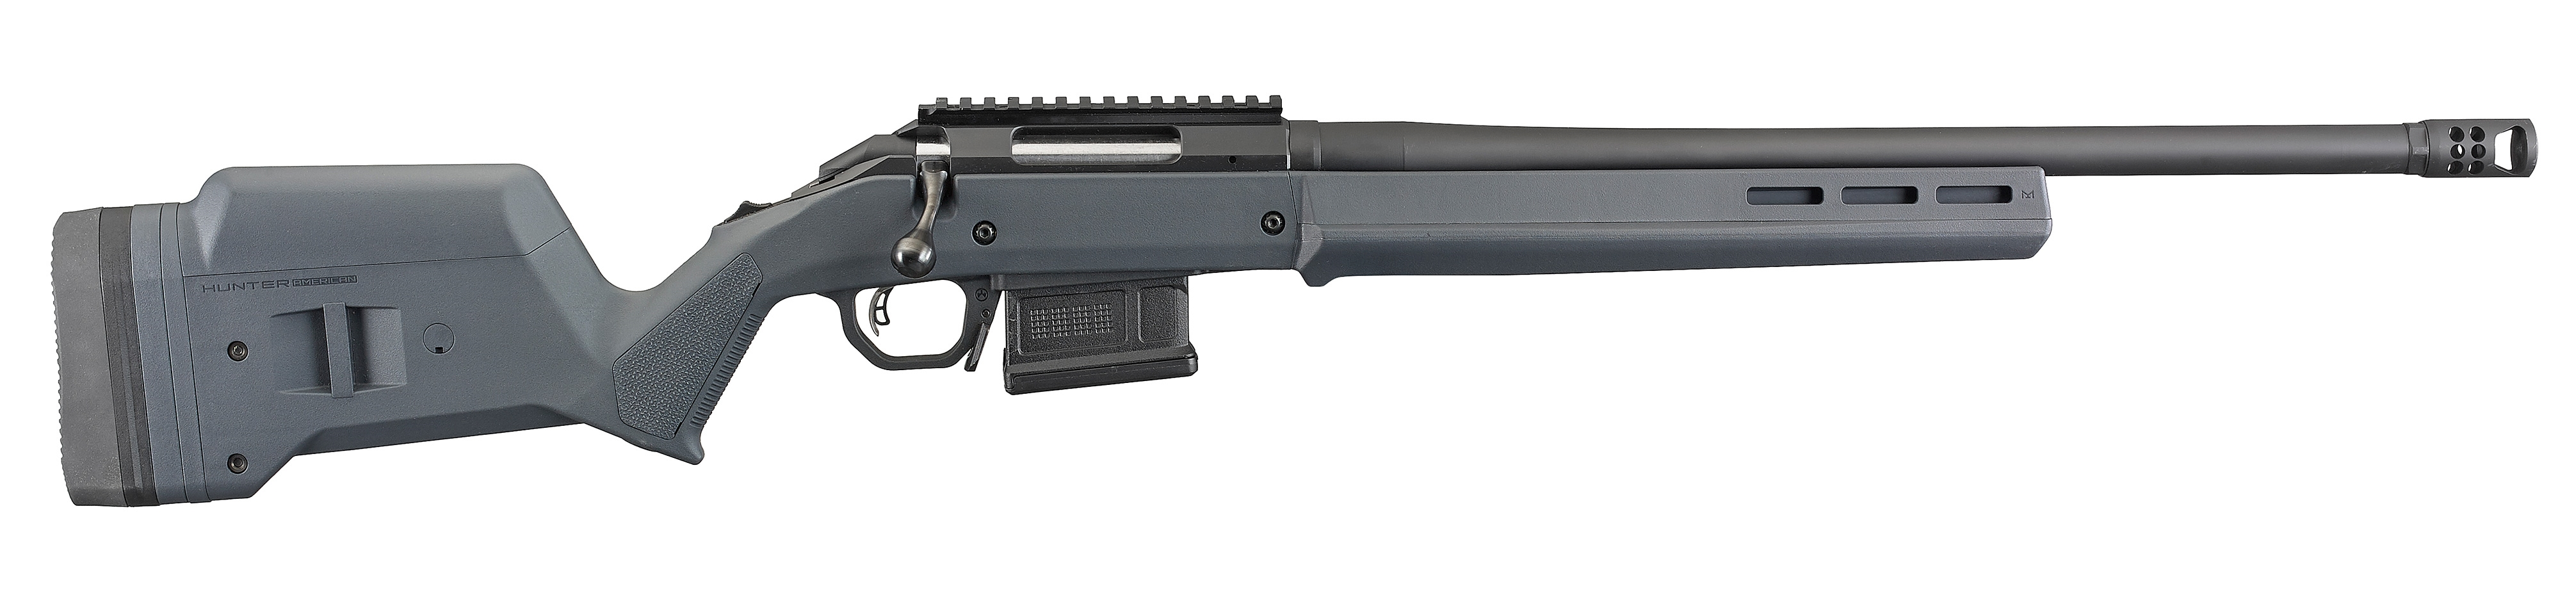 Ruger American Rifle Hunter 308 Win